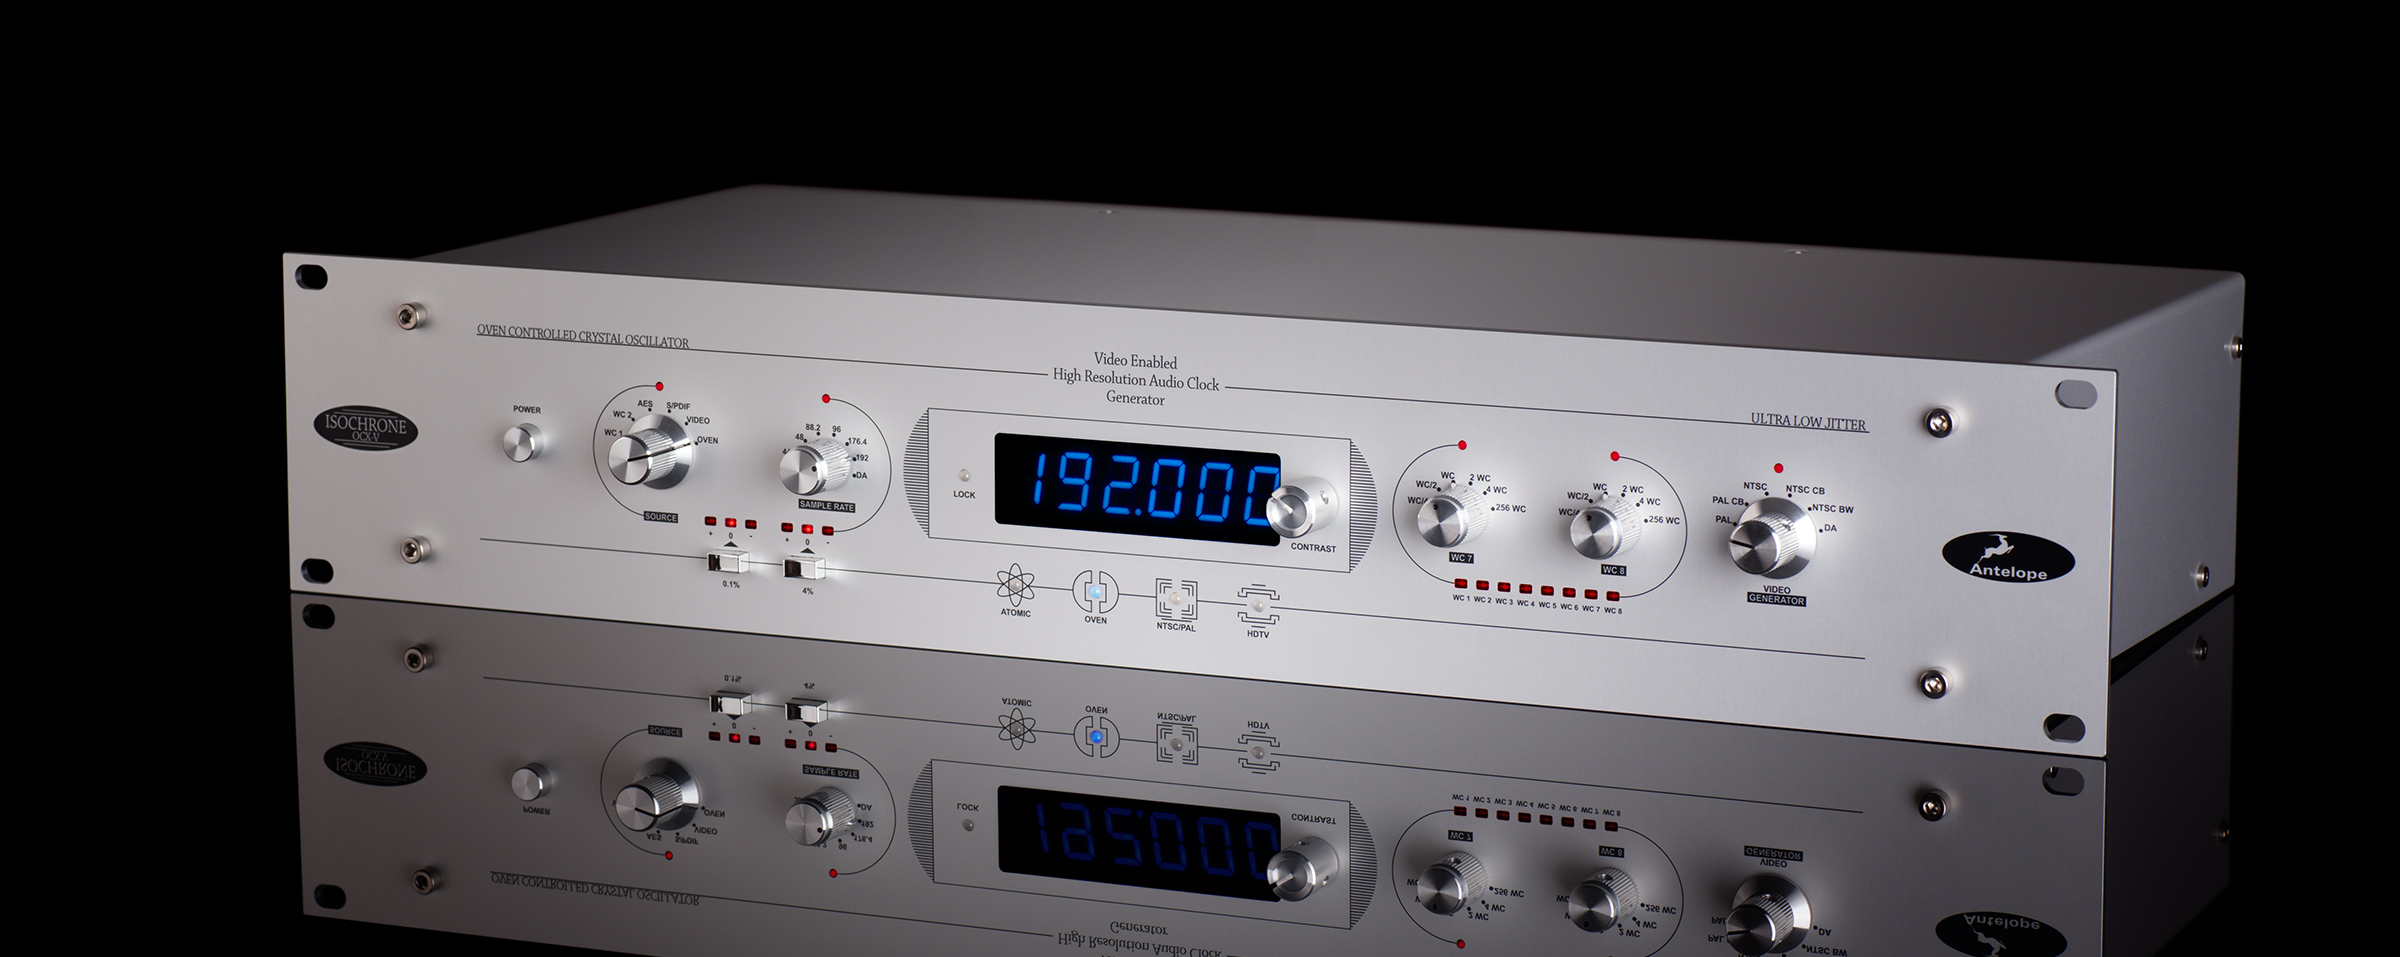 The OCX-V is a video-enabled audio master clock